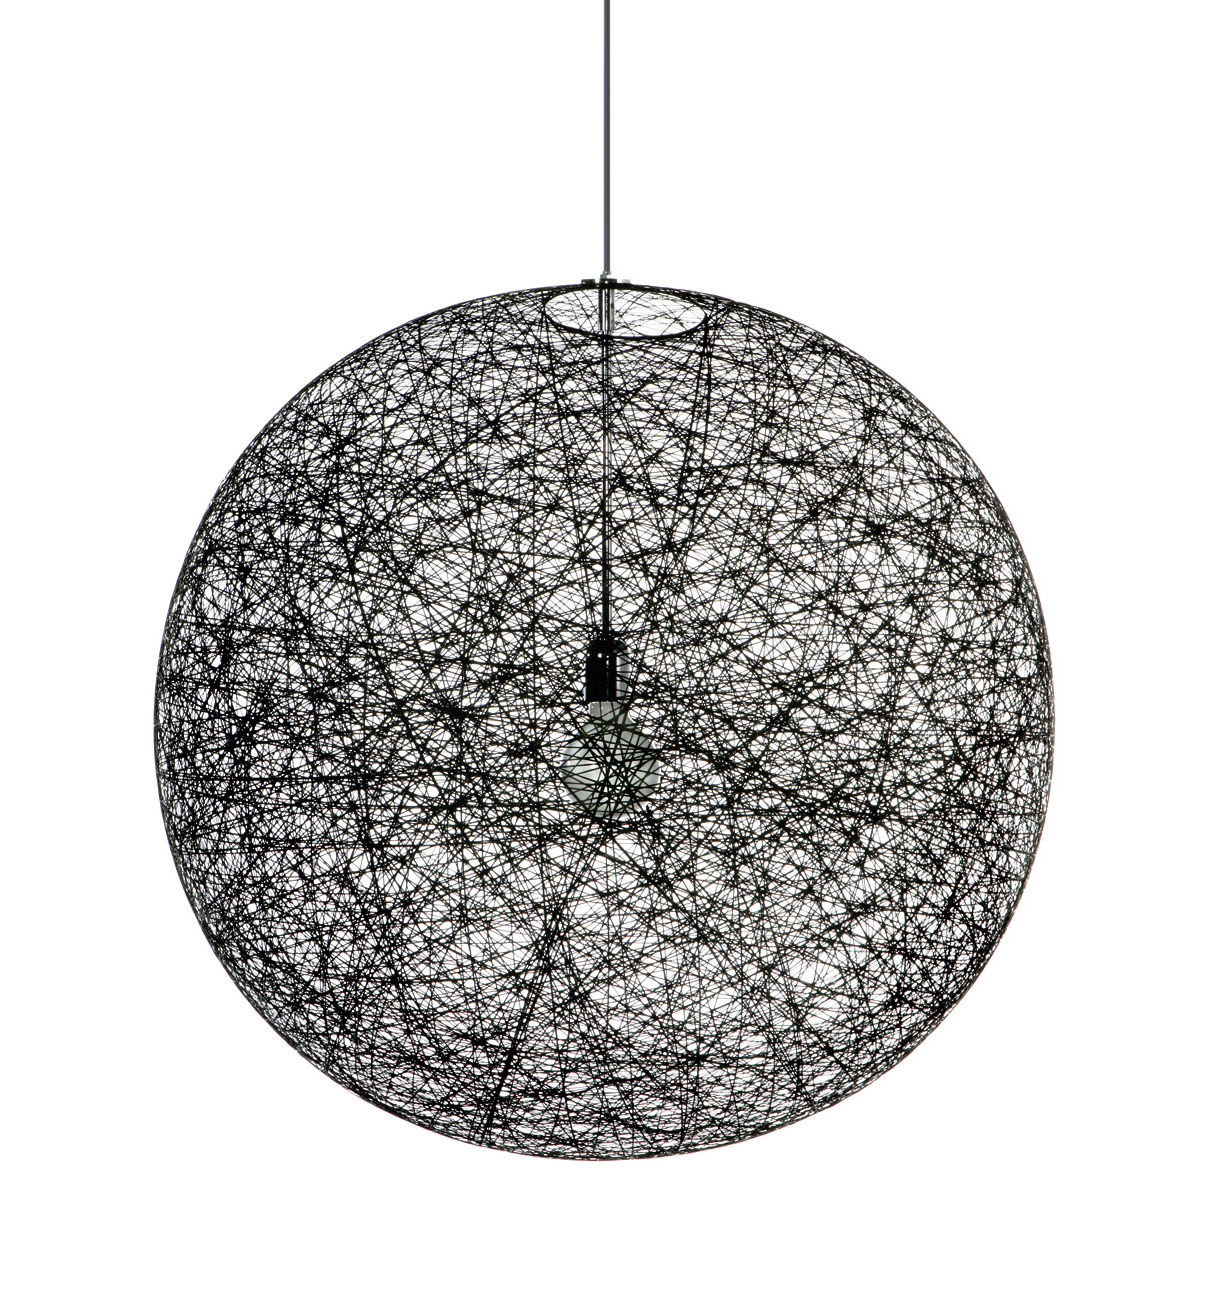 Lighting - Pendant Lighting - Random Light LED Pendant - LED version - Ø 50 cm by Moooi - Black - Ø 50 cm - LED - Epoxy resin, Fibreglass